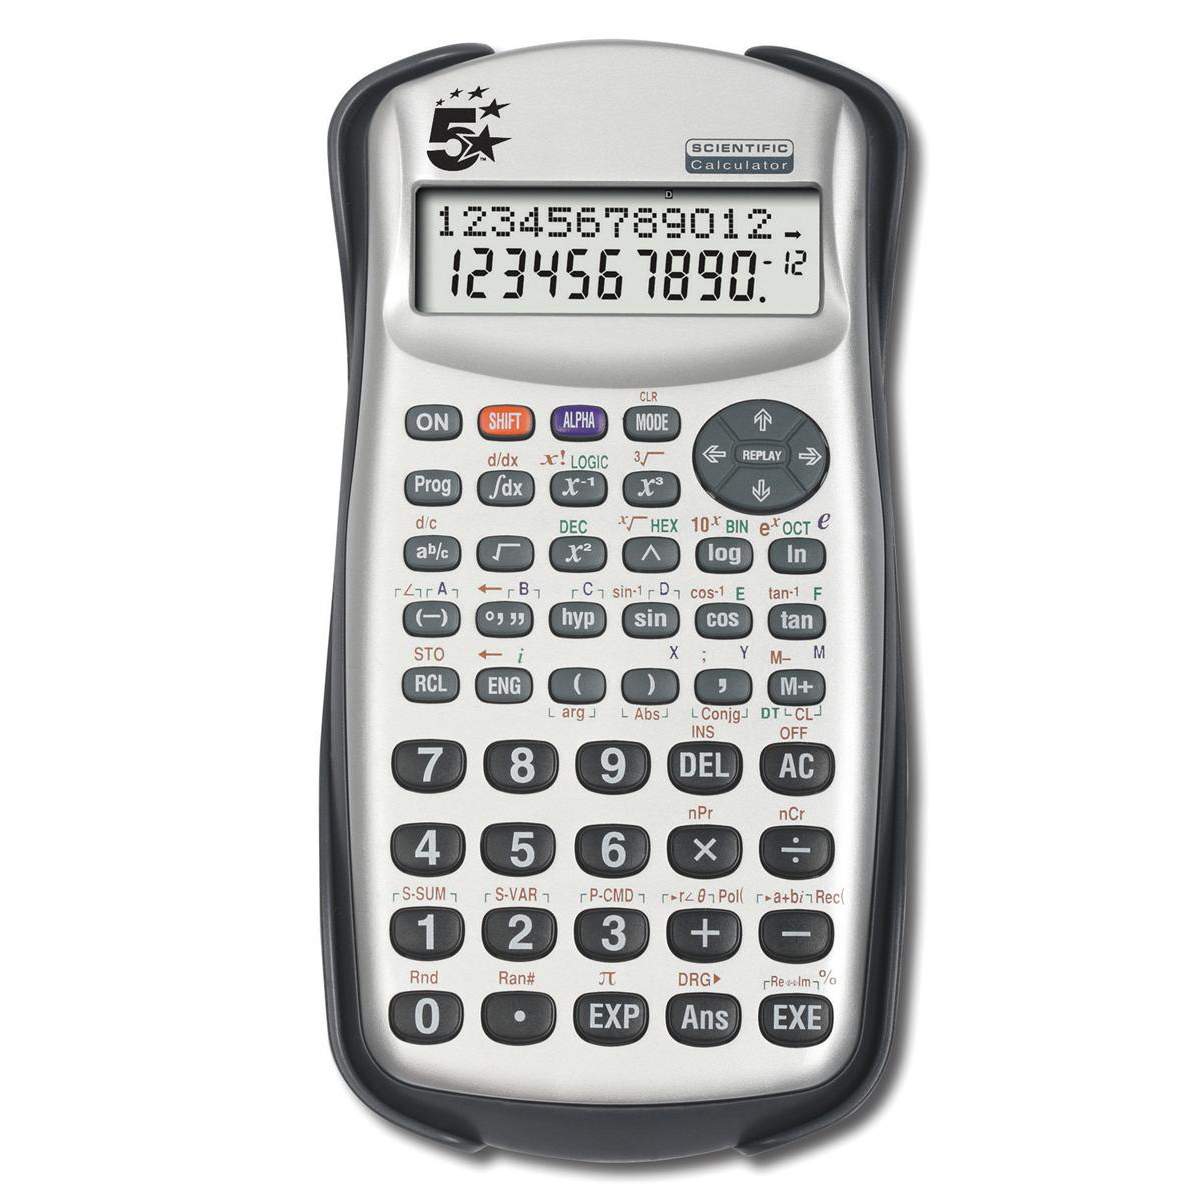 5 Star Office Scientific Calculator 2 Line Display 279 Functions 84.5x19x164.5mm Silver/Black